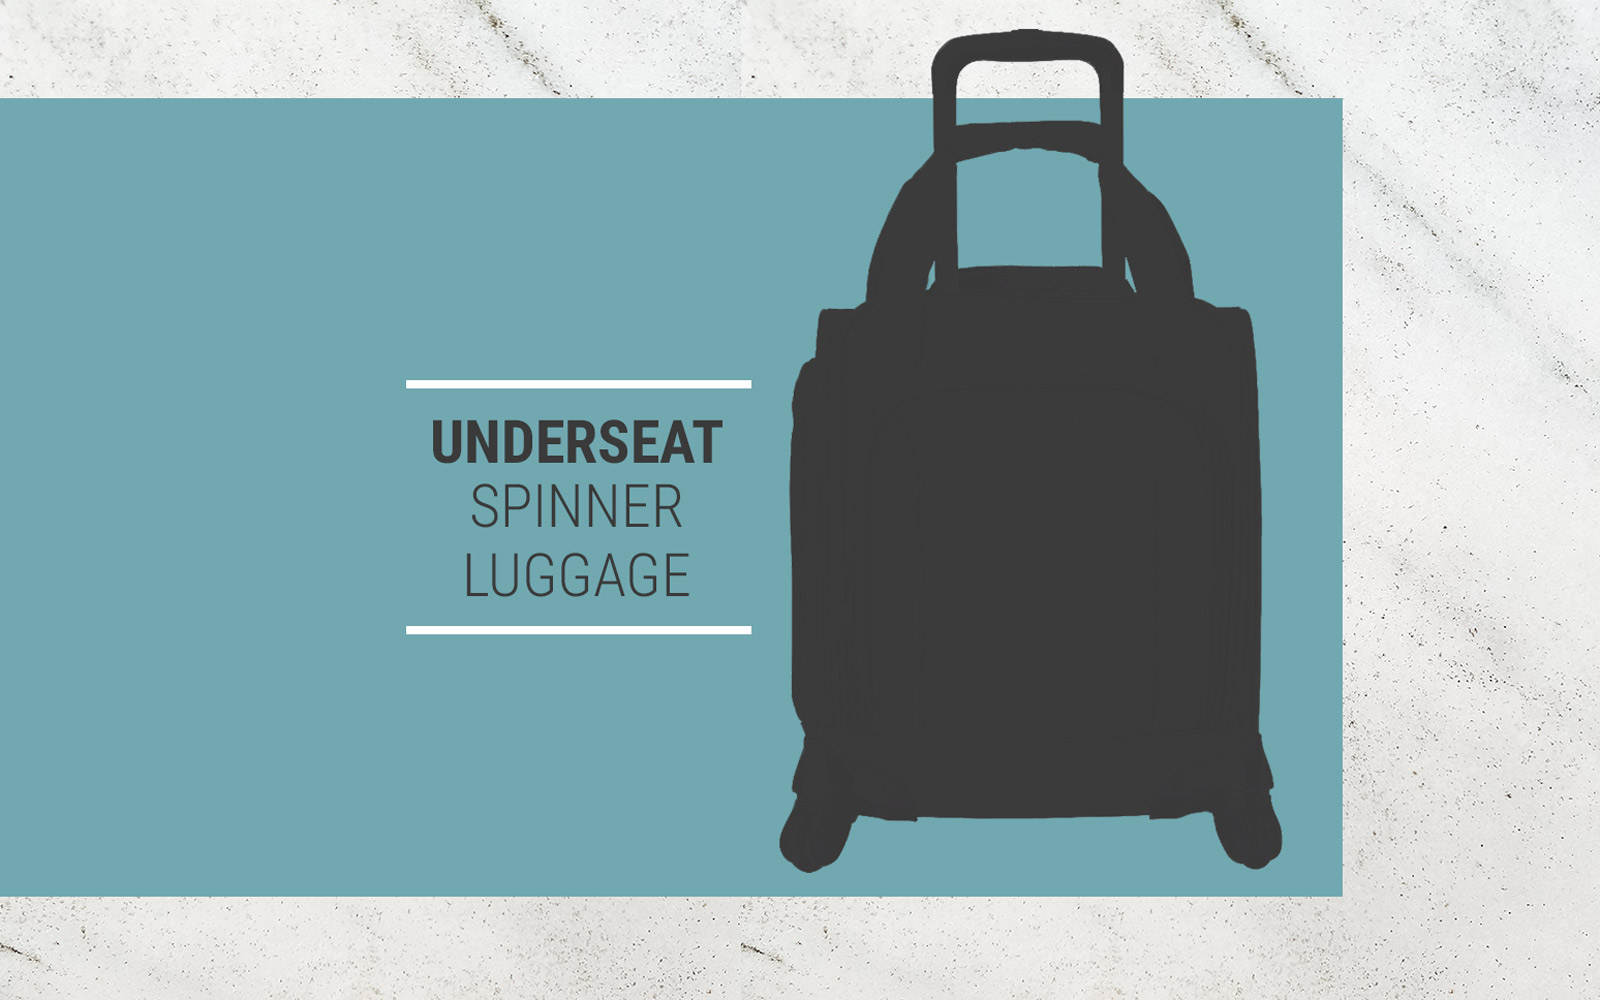 underseat spinner luggage